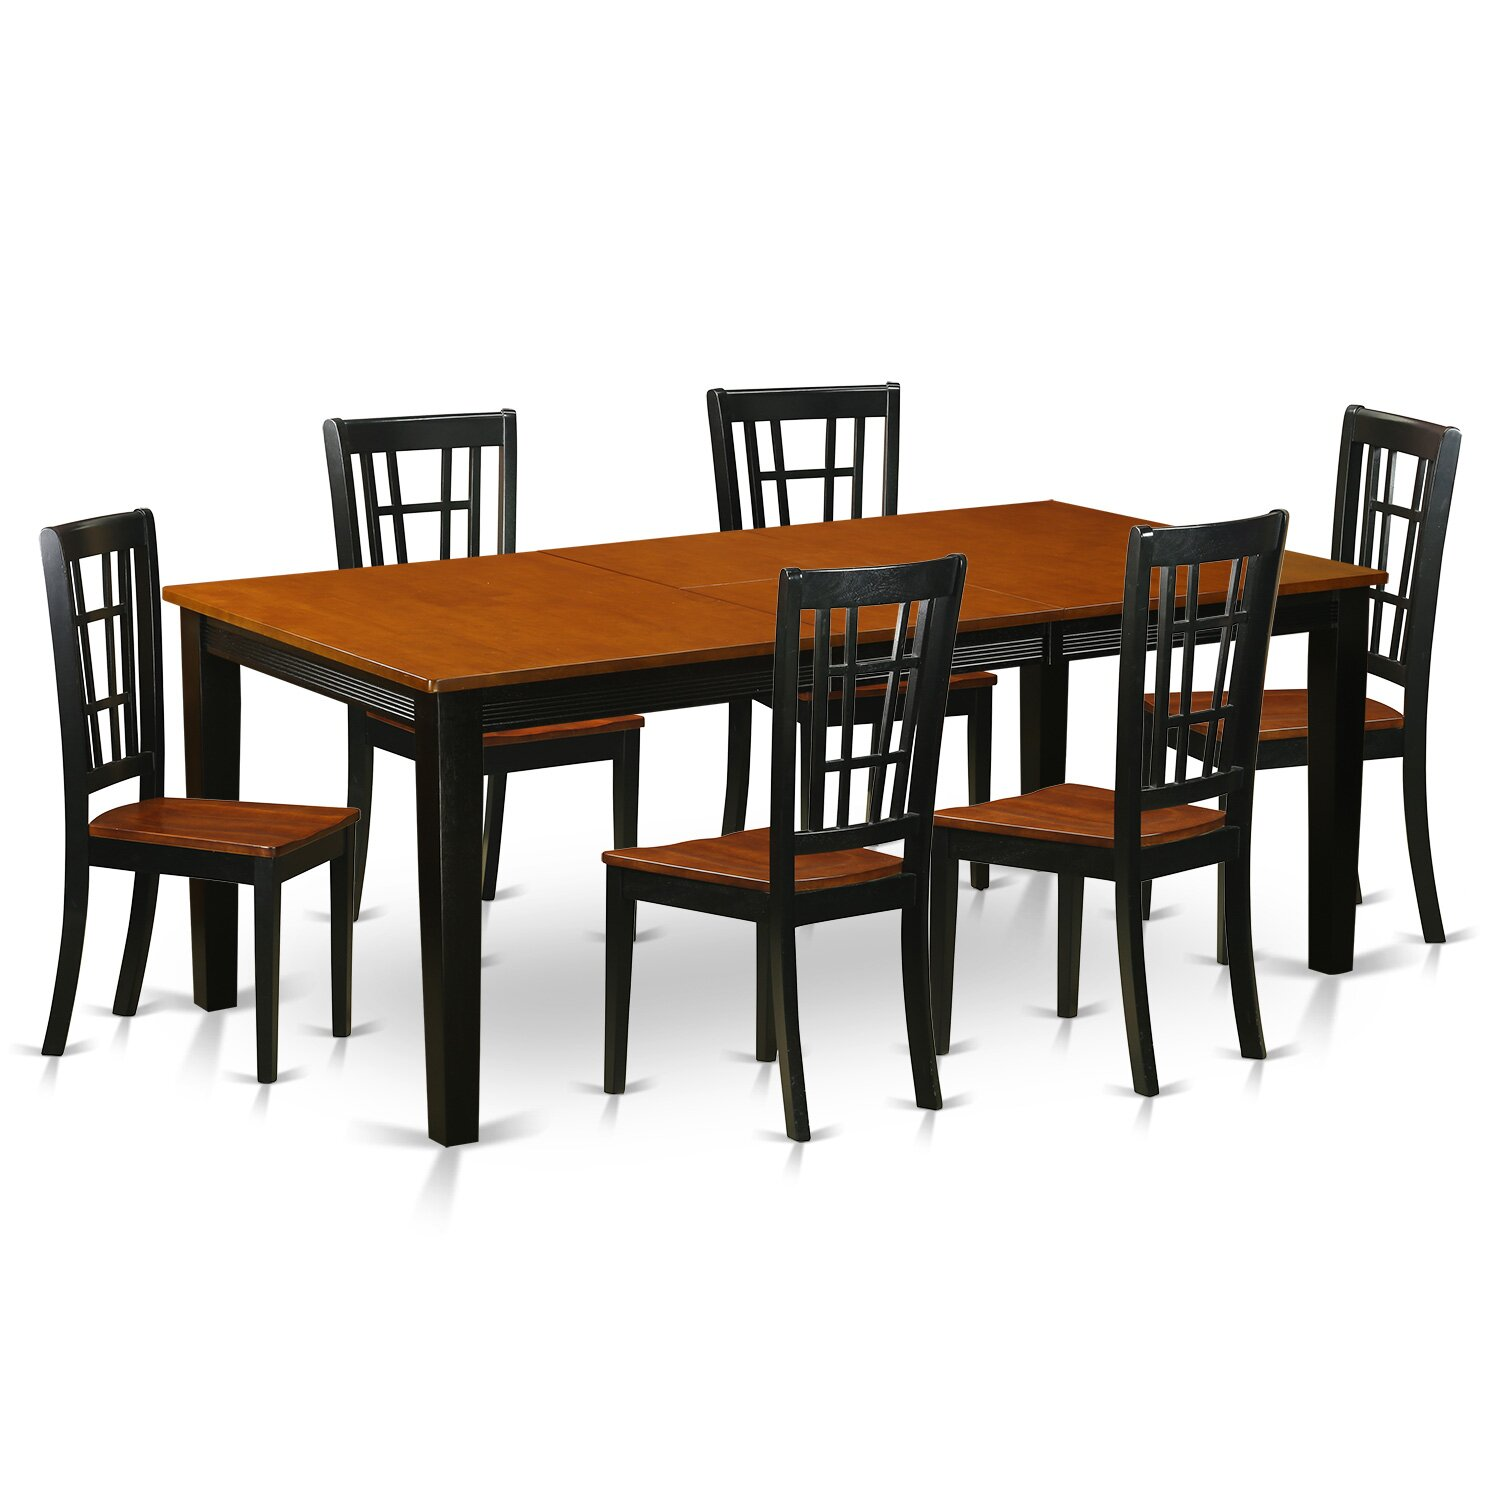 Solid Wood Dining Room Table Pc Calgary Round Walnut Dining Table Set At Gowfbca True